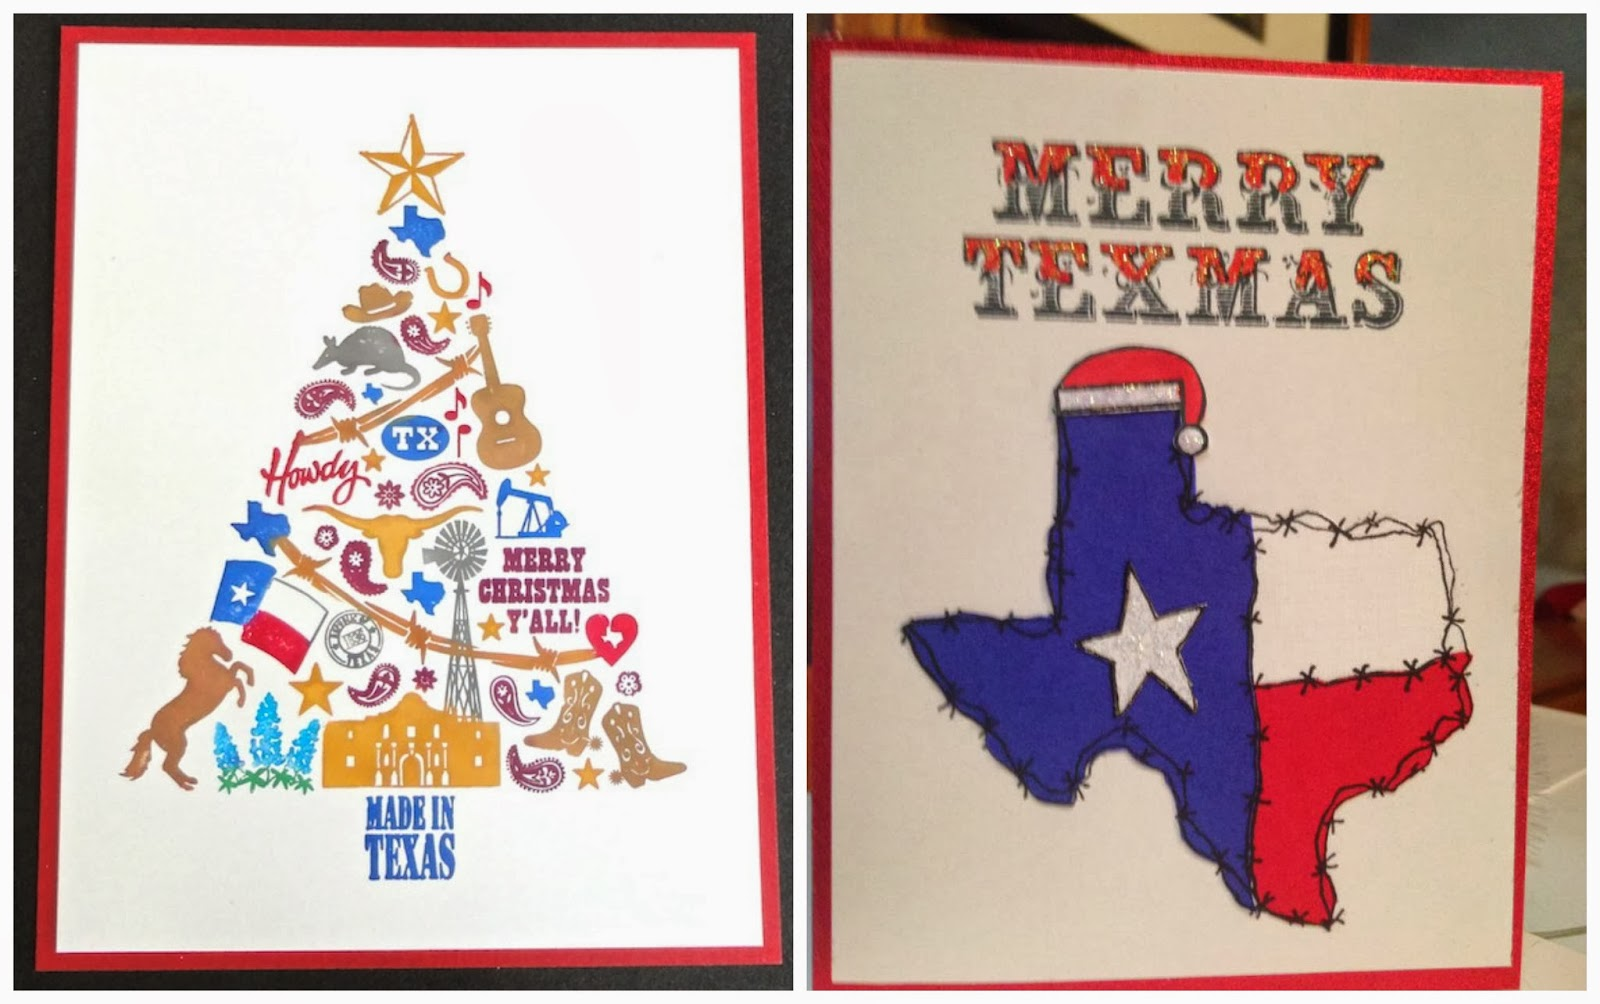 Your Merry Mailbox: Texas Week: Merry Christmas Y'all!